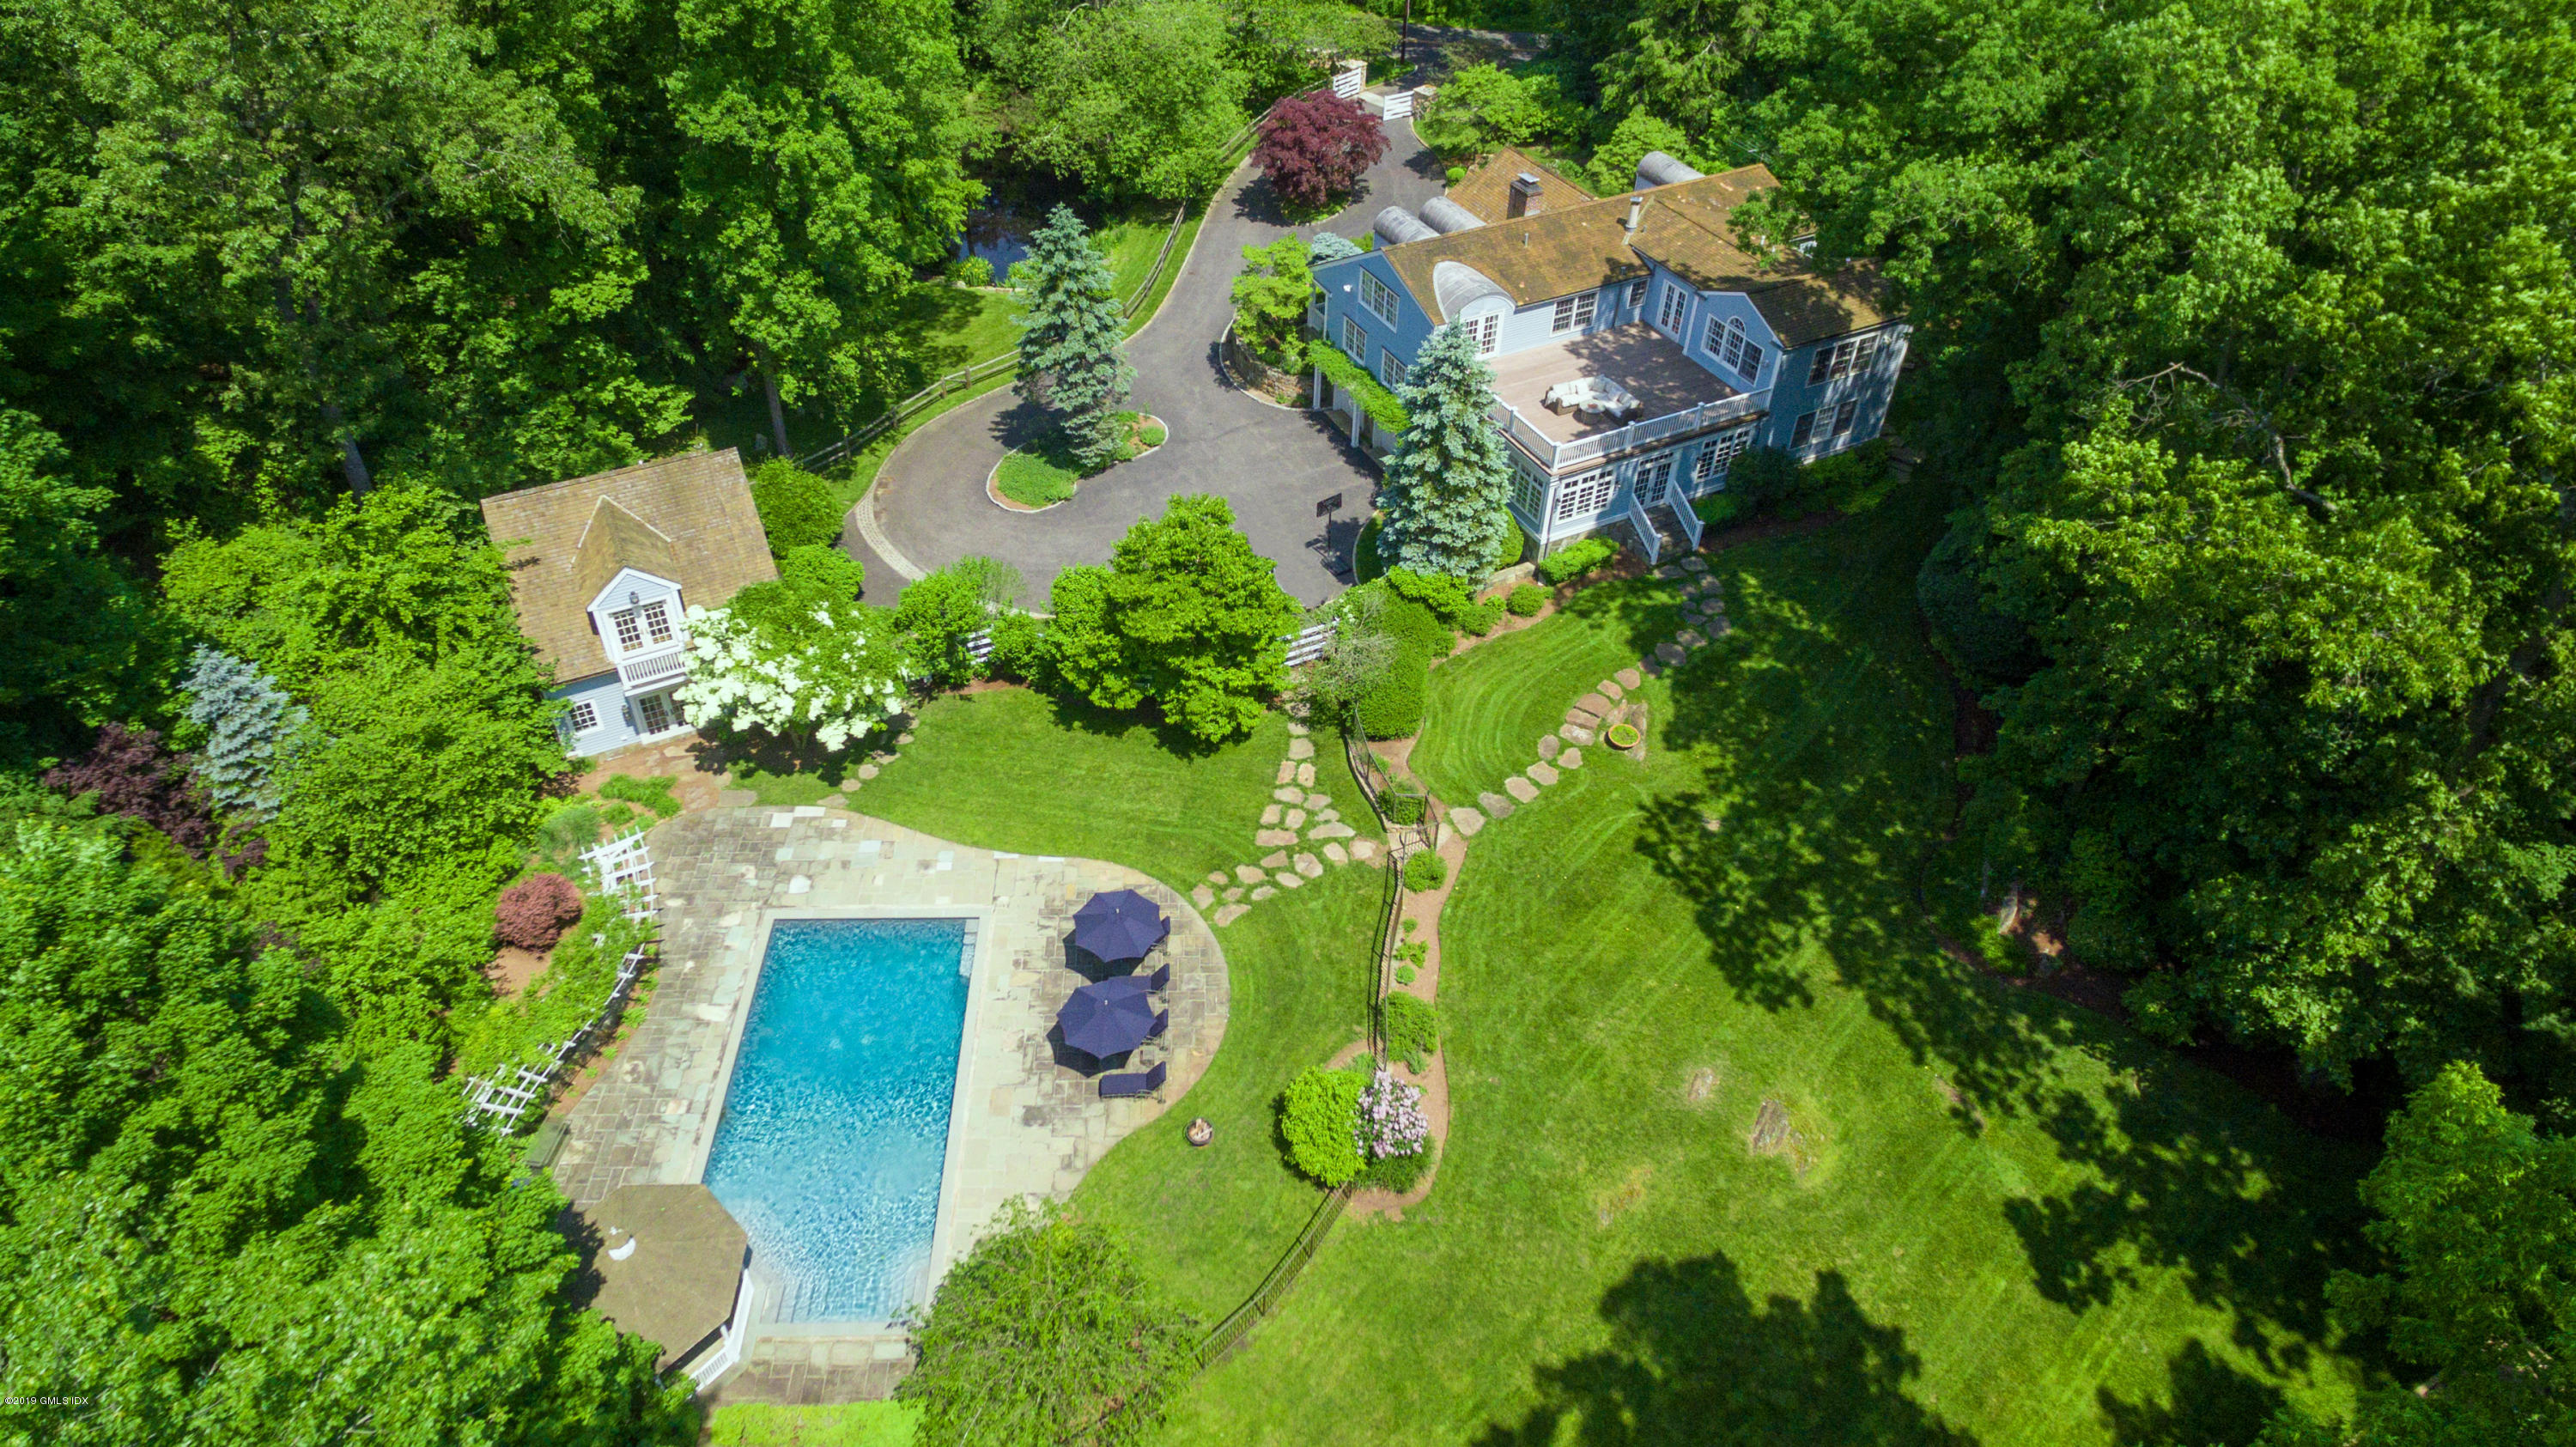 178 Cat Rock Road,Cos Cob,Connecticut 06807,6 Bedrooms Bedrooms,4 BathroomsBathrooms,Single family,Cat Rock,107269